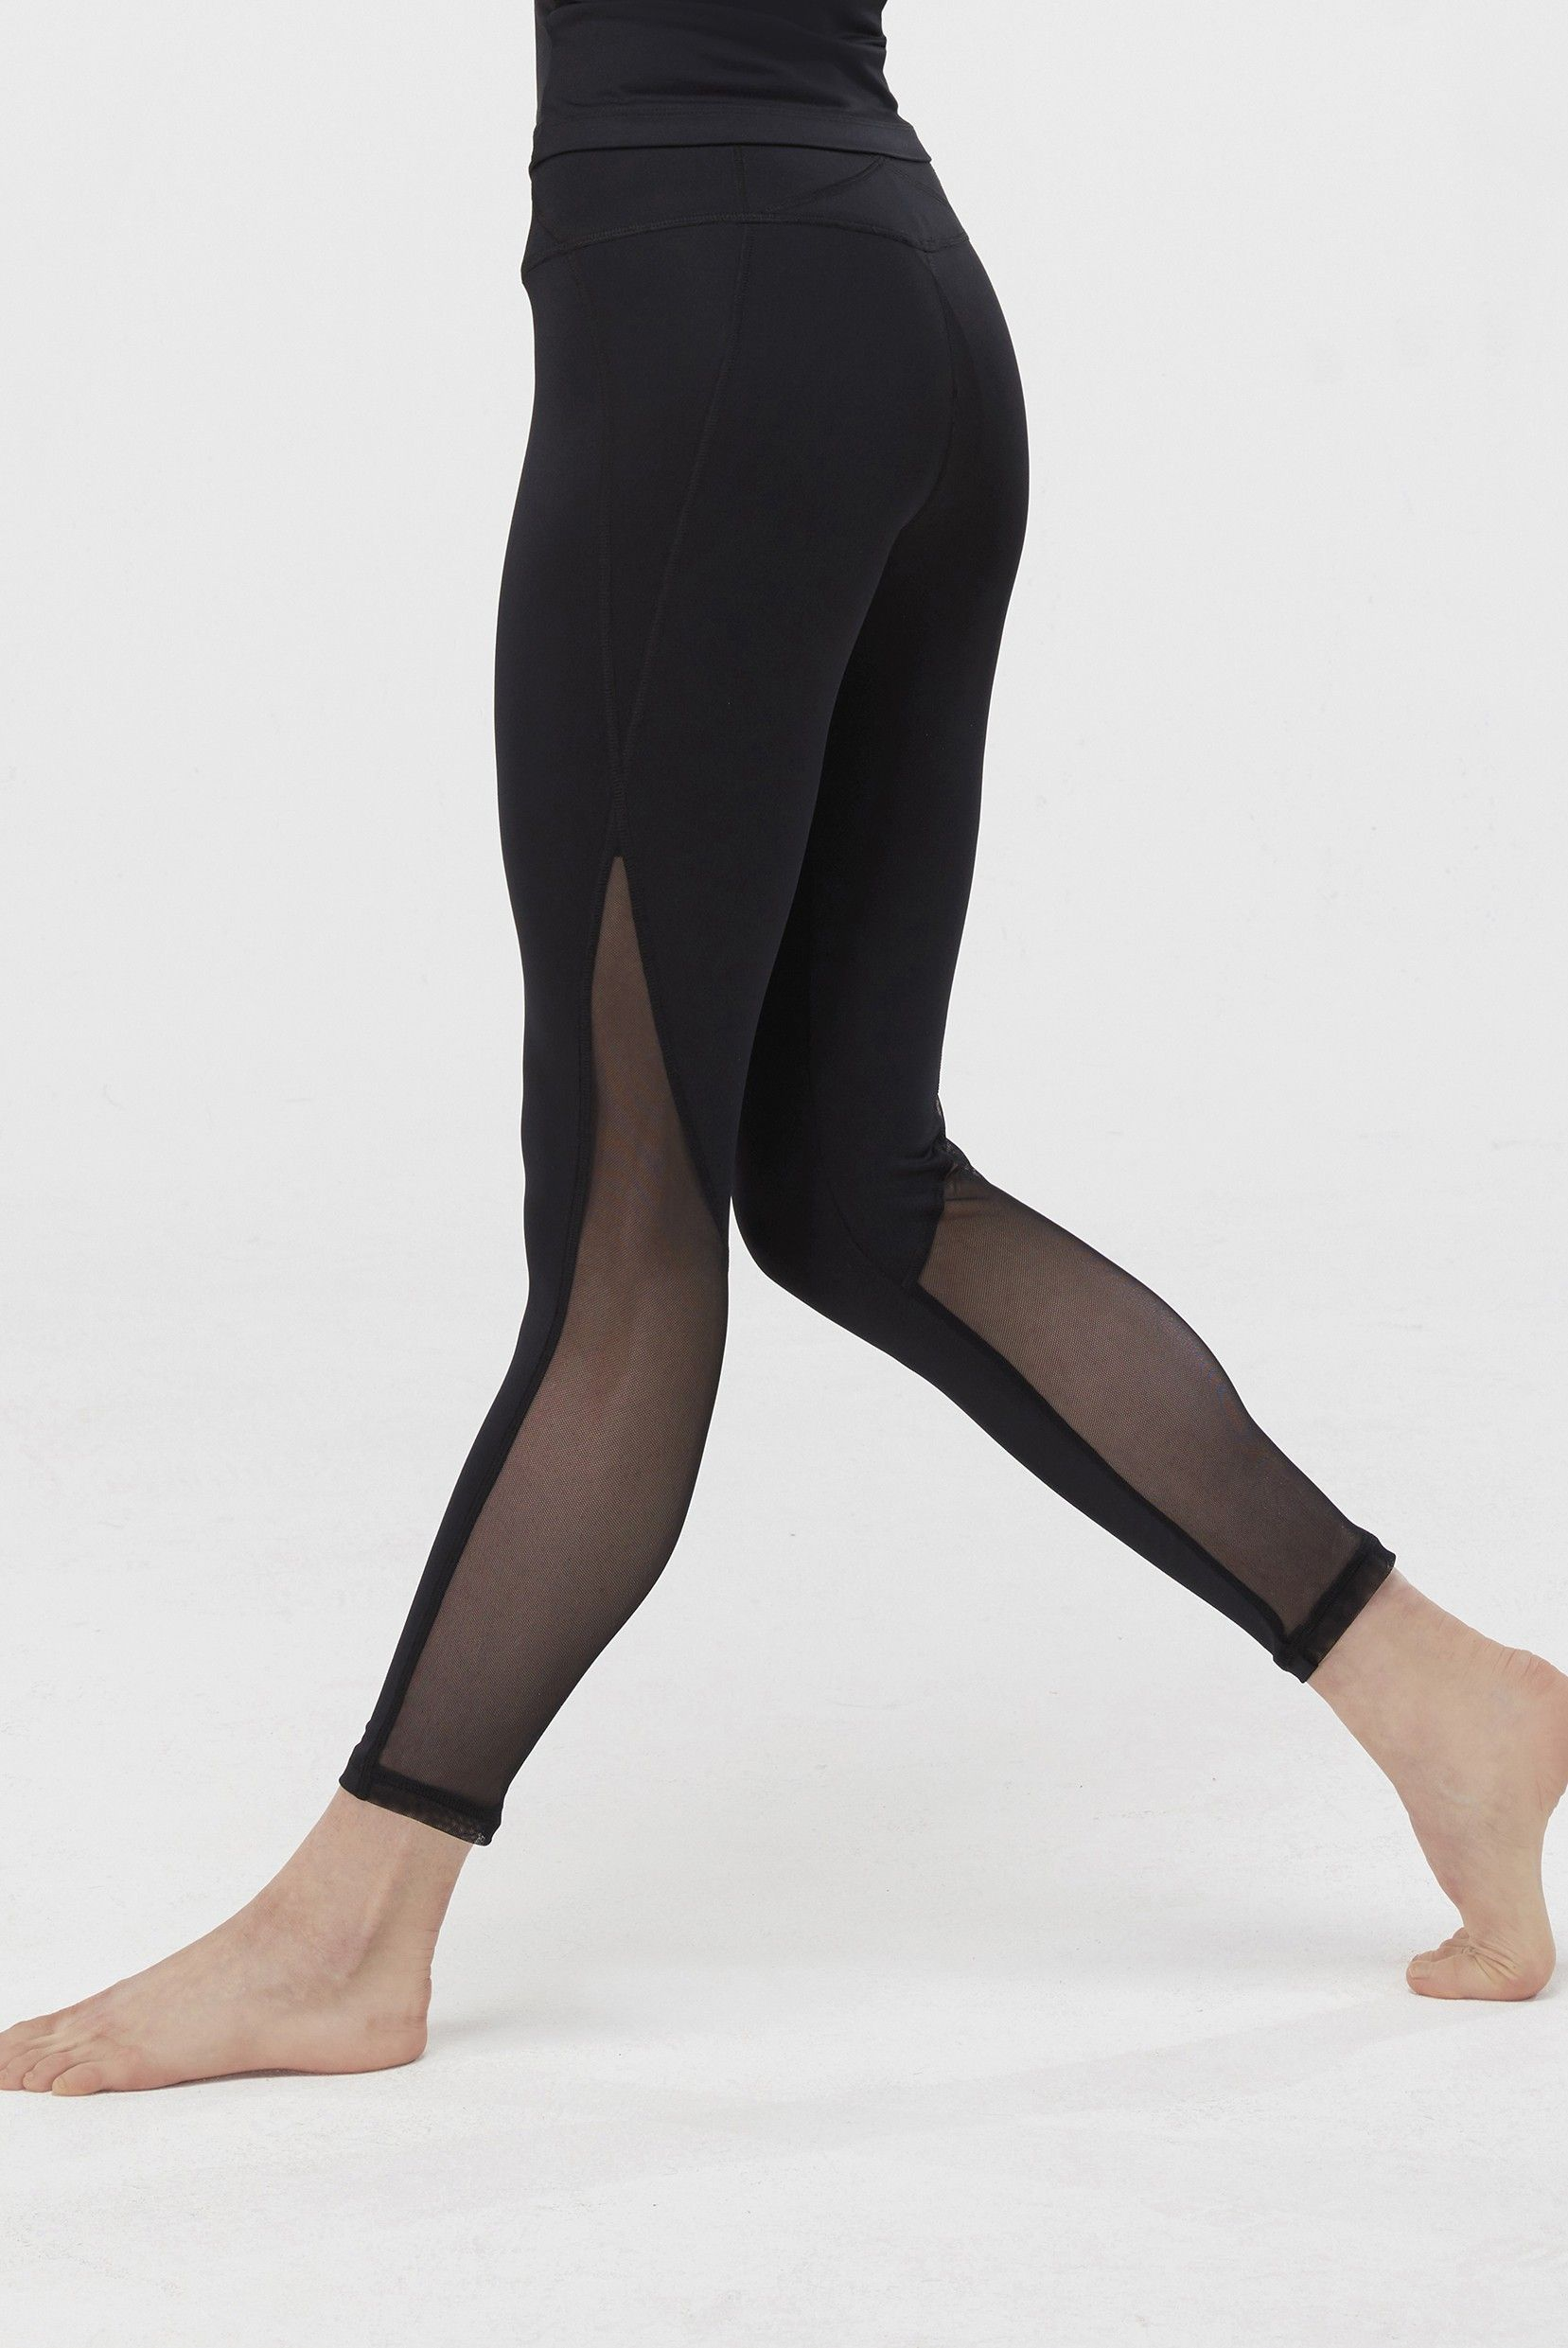 Wear Moi Women's Black Belinda Leggings